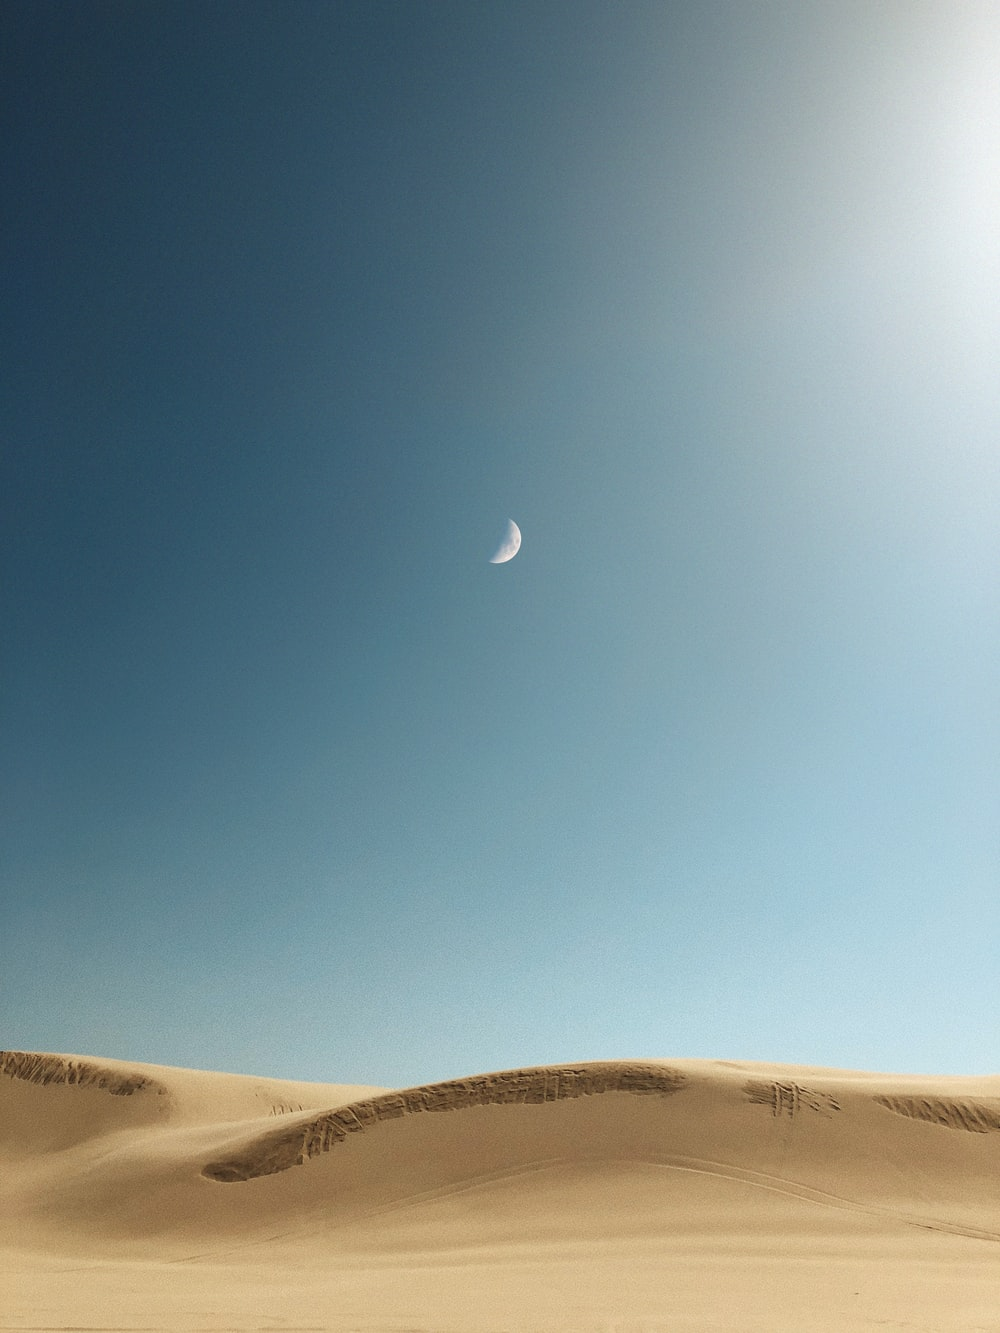 20 free desert pictures stock photos on unsplash